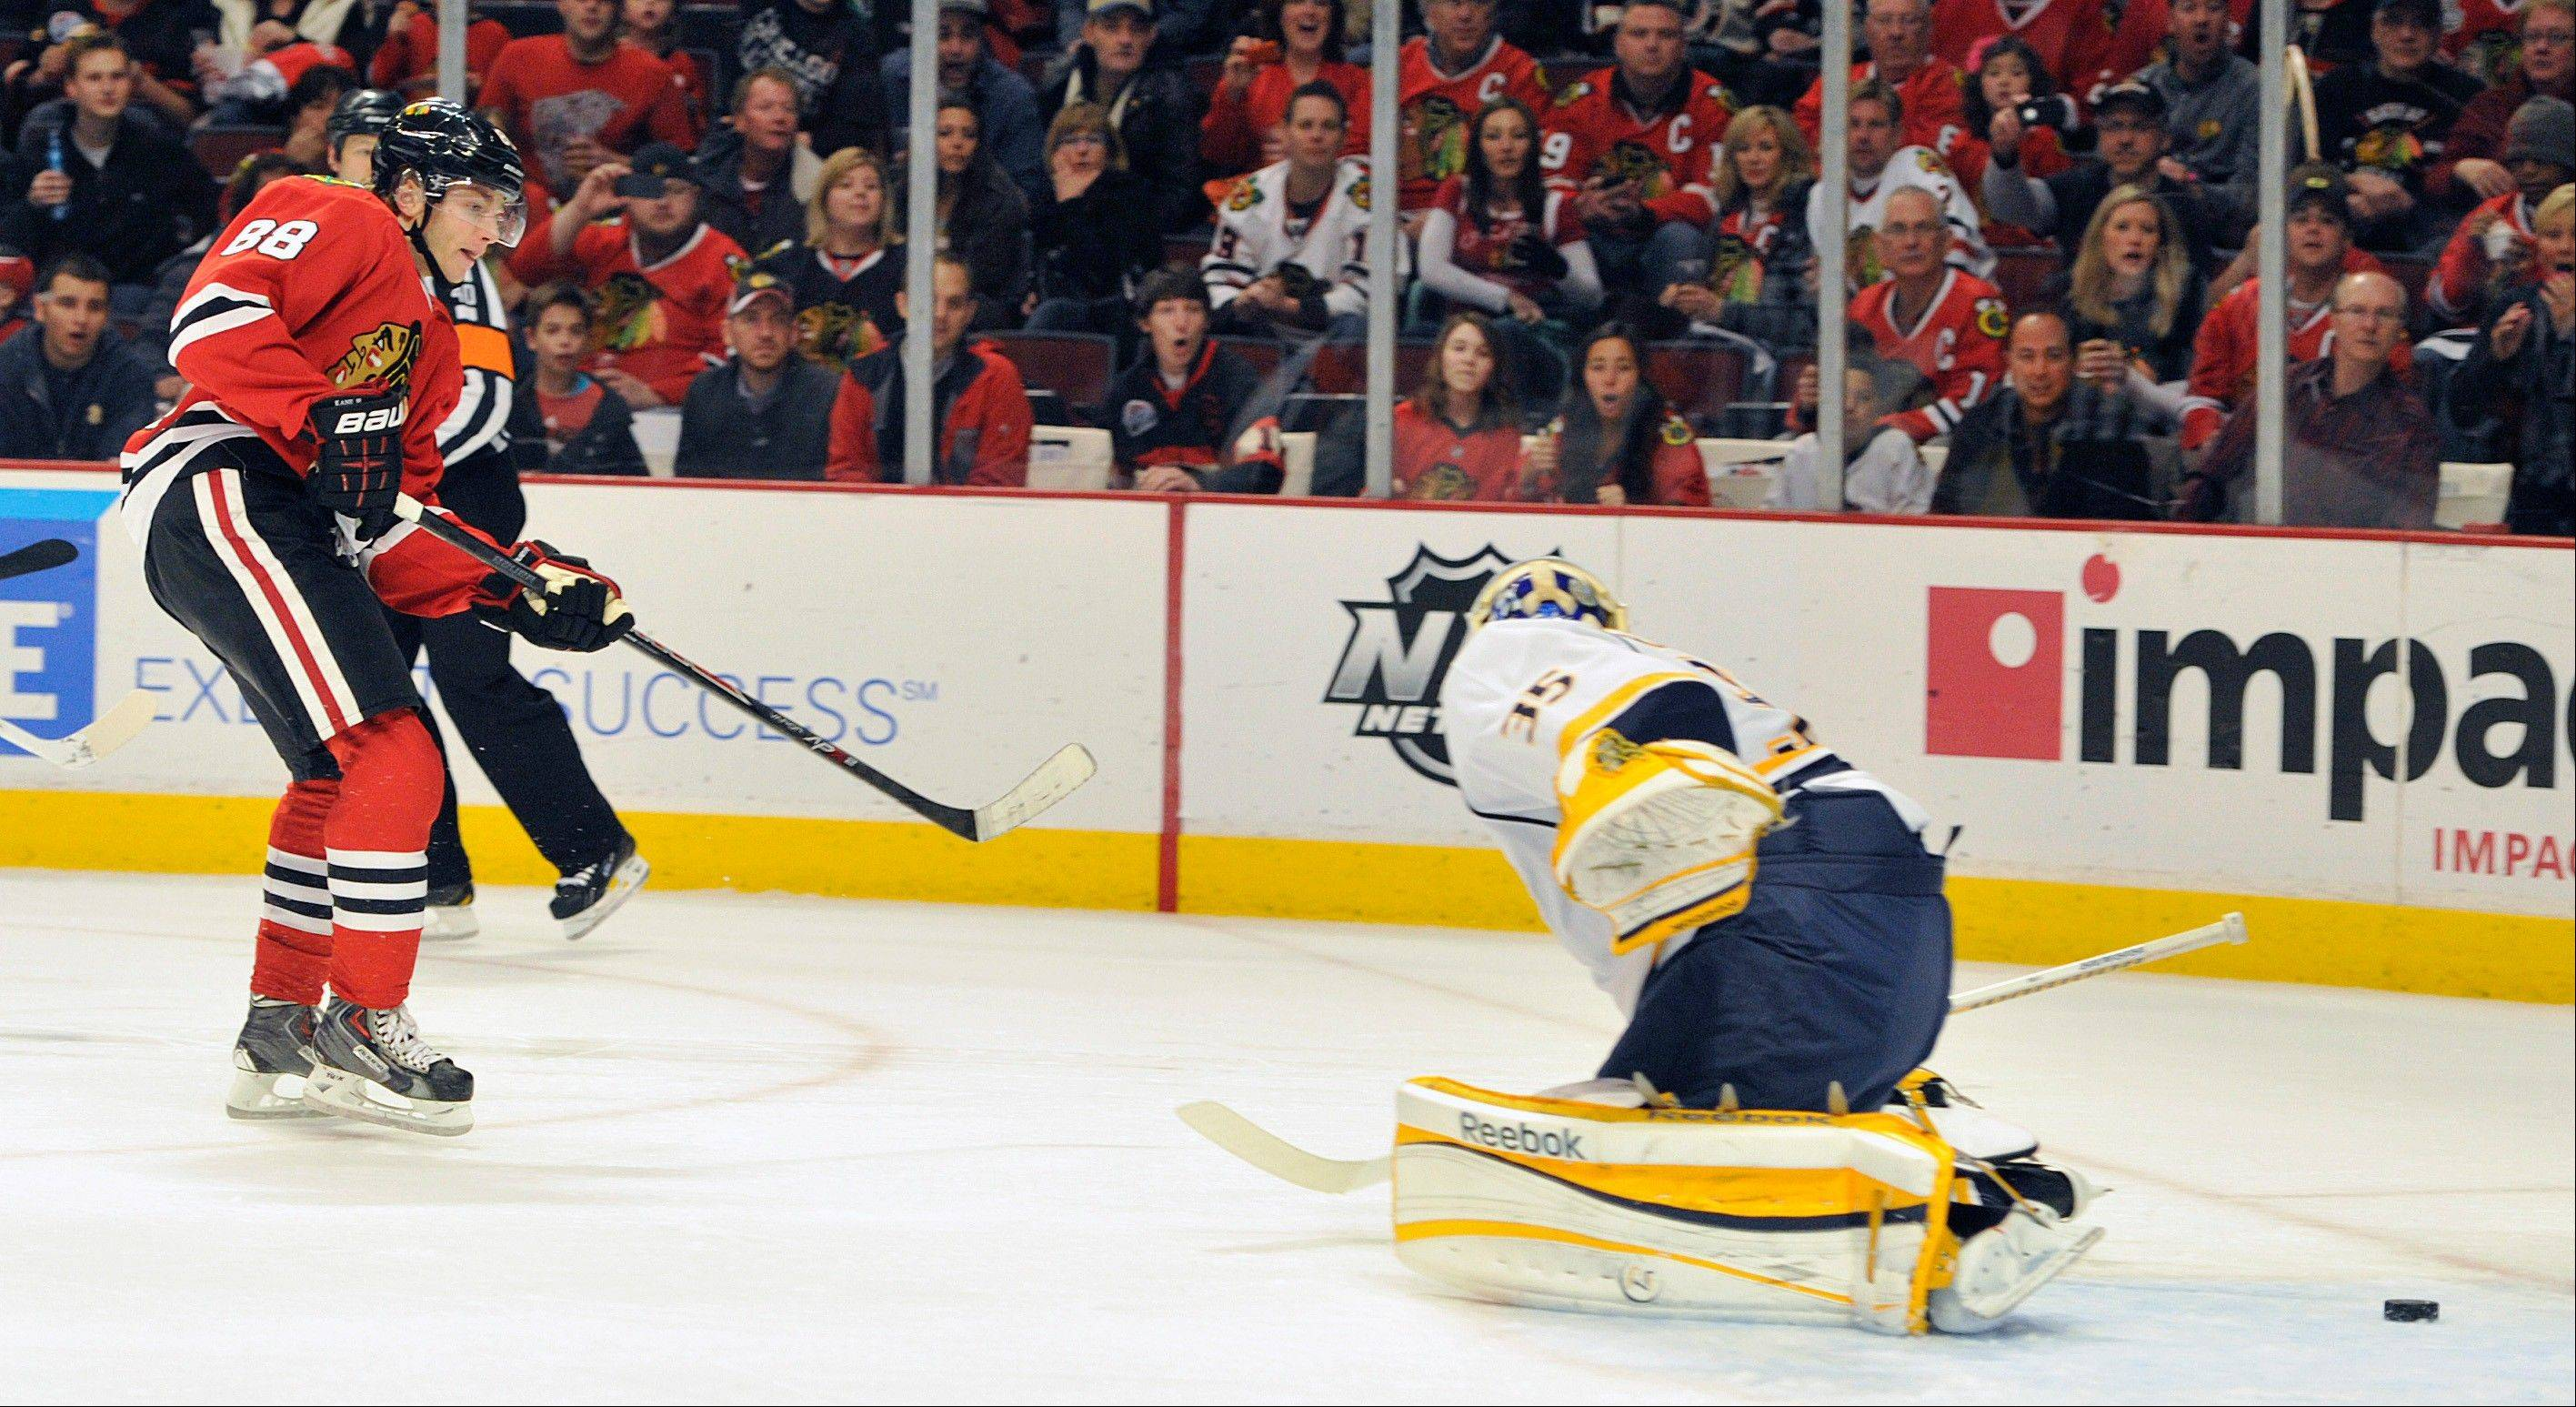 Associated Press The Blackhawks� Patrick Kane shoots the puck past Predators goalie Pekka Rinne during the second period Friday at the United Center.